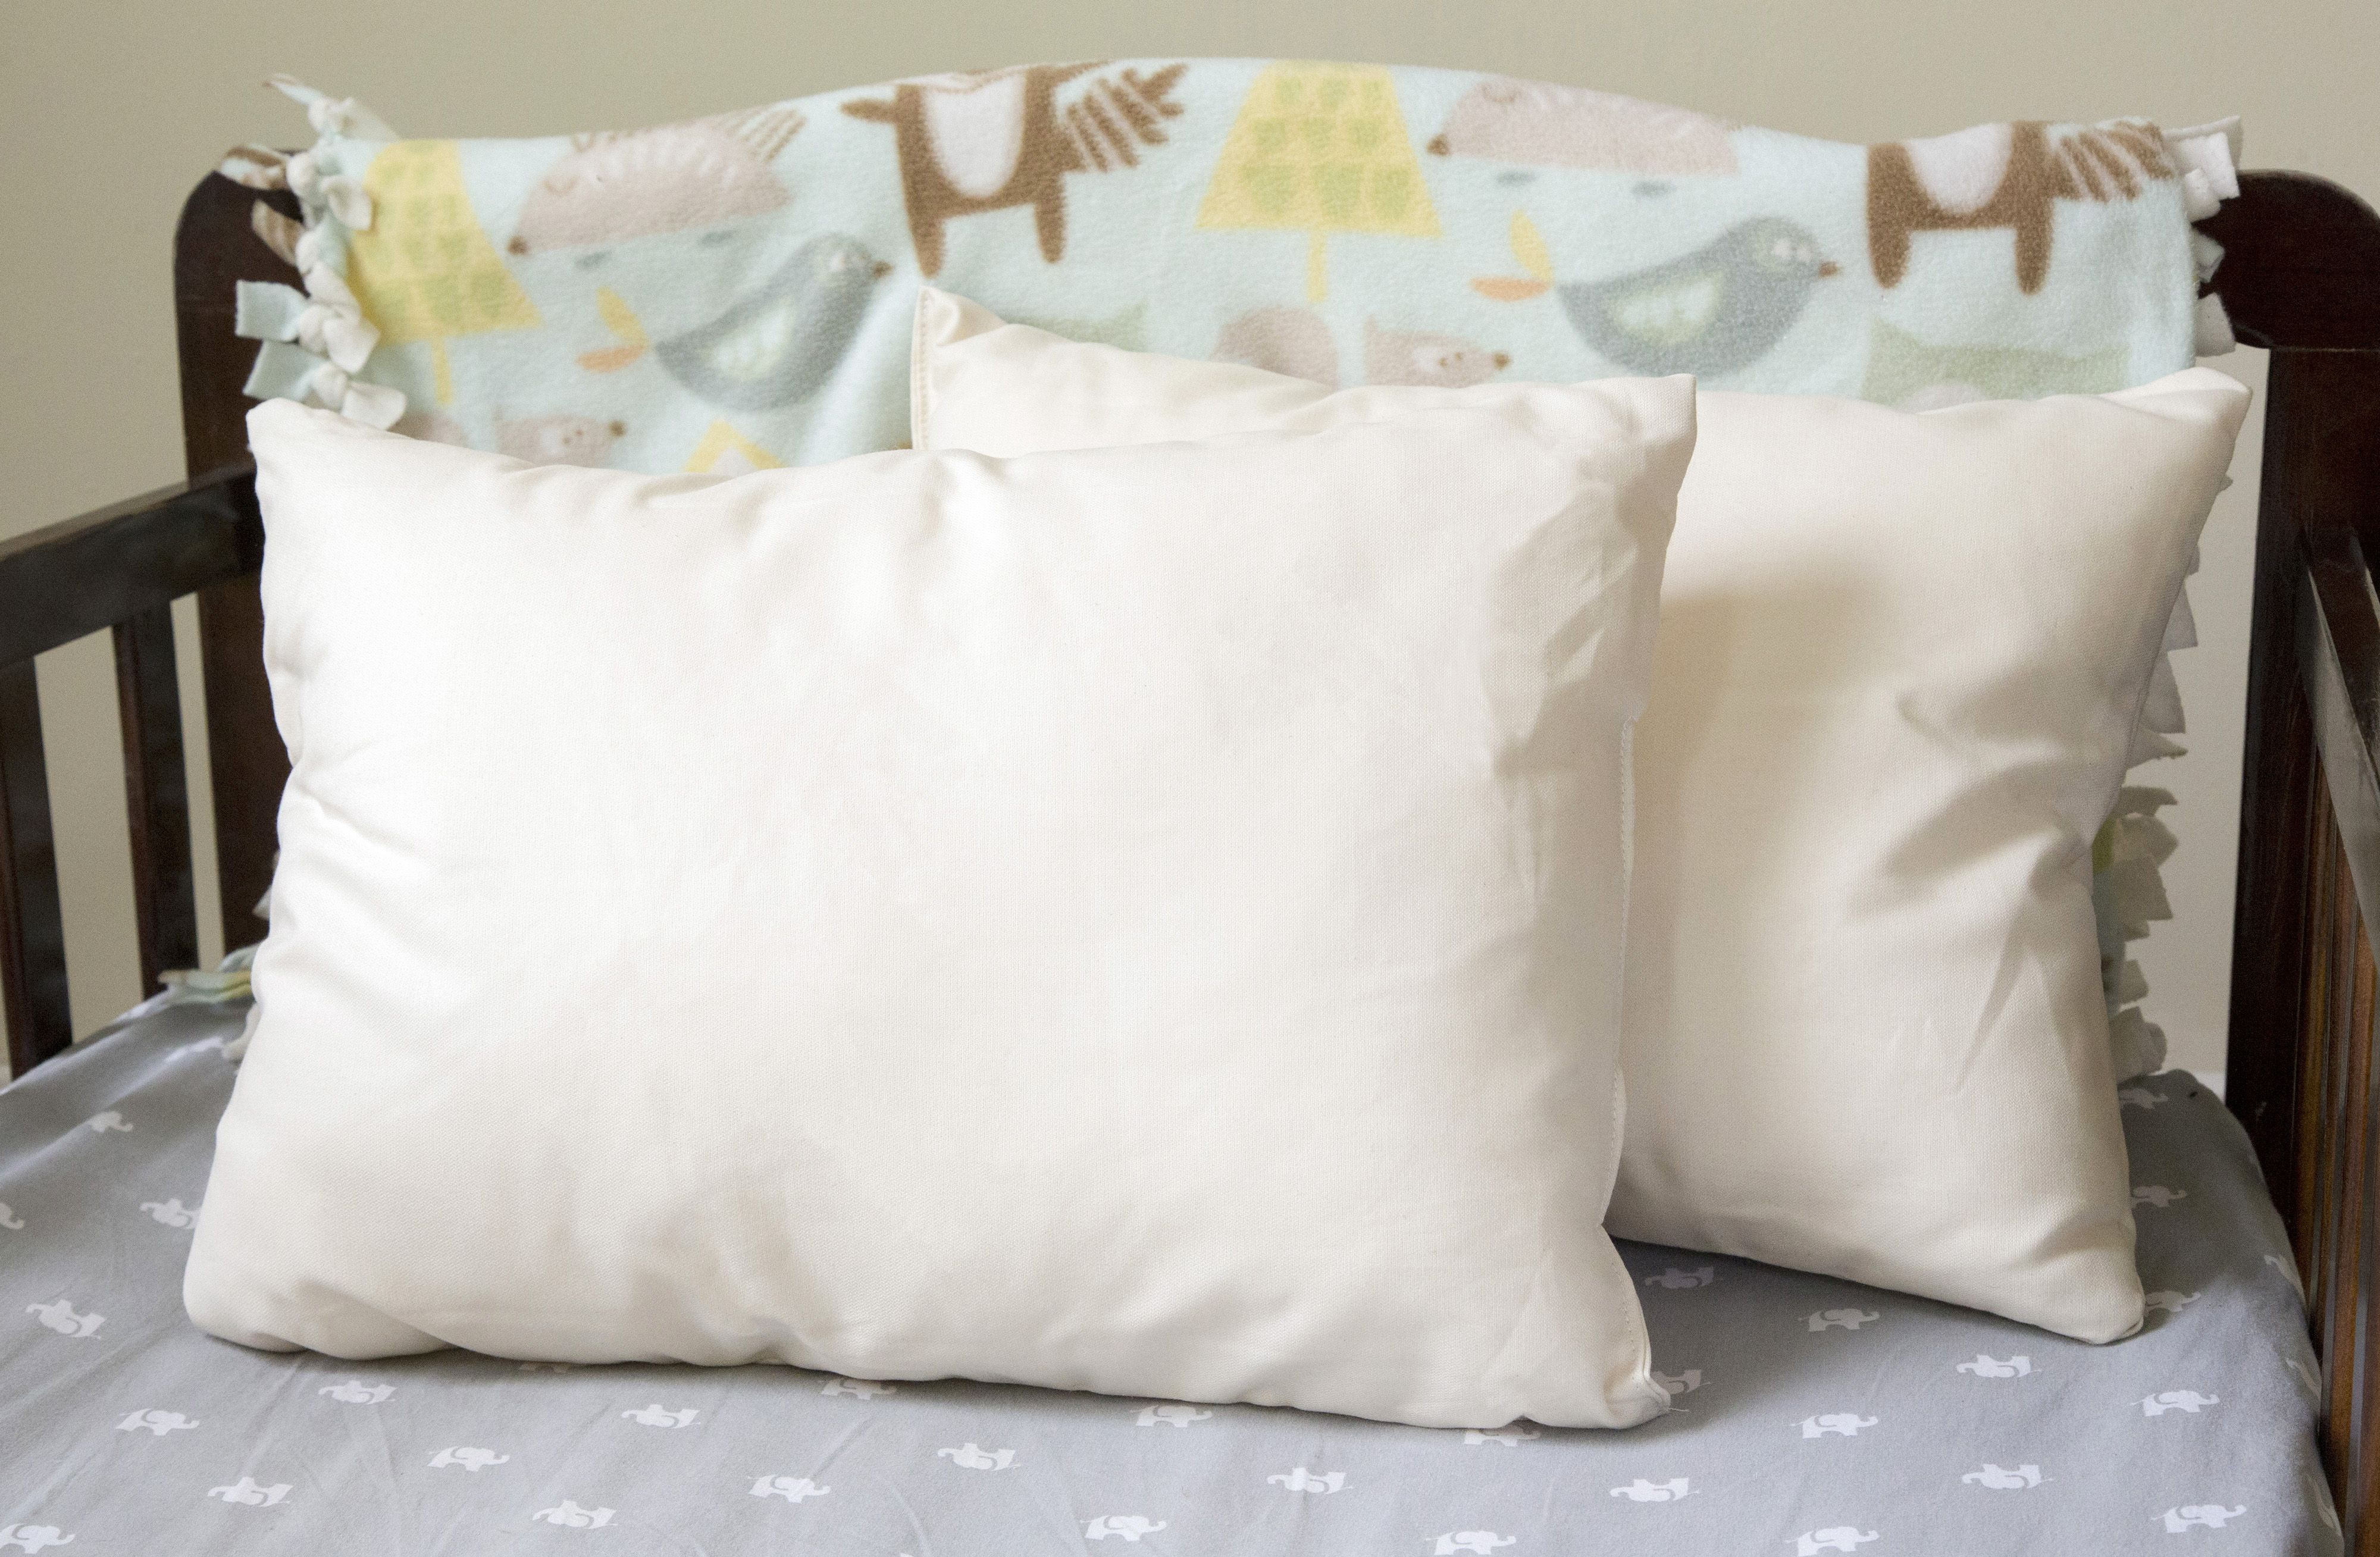 screwpine miriam double woven pillow and products colour img eco organic leaf natural throw friendly